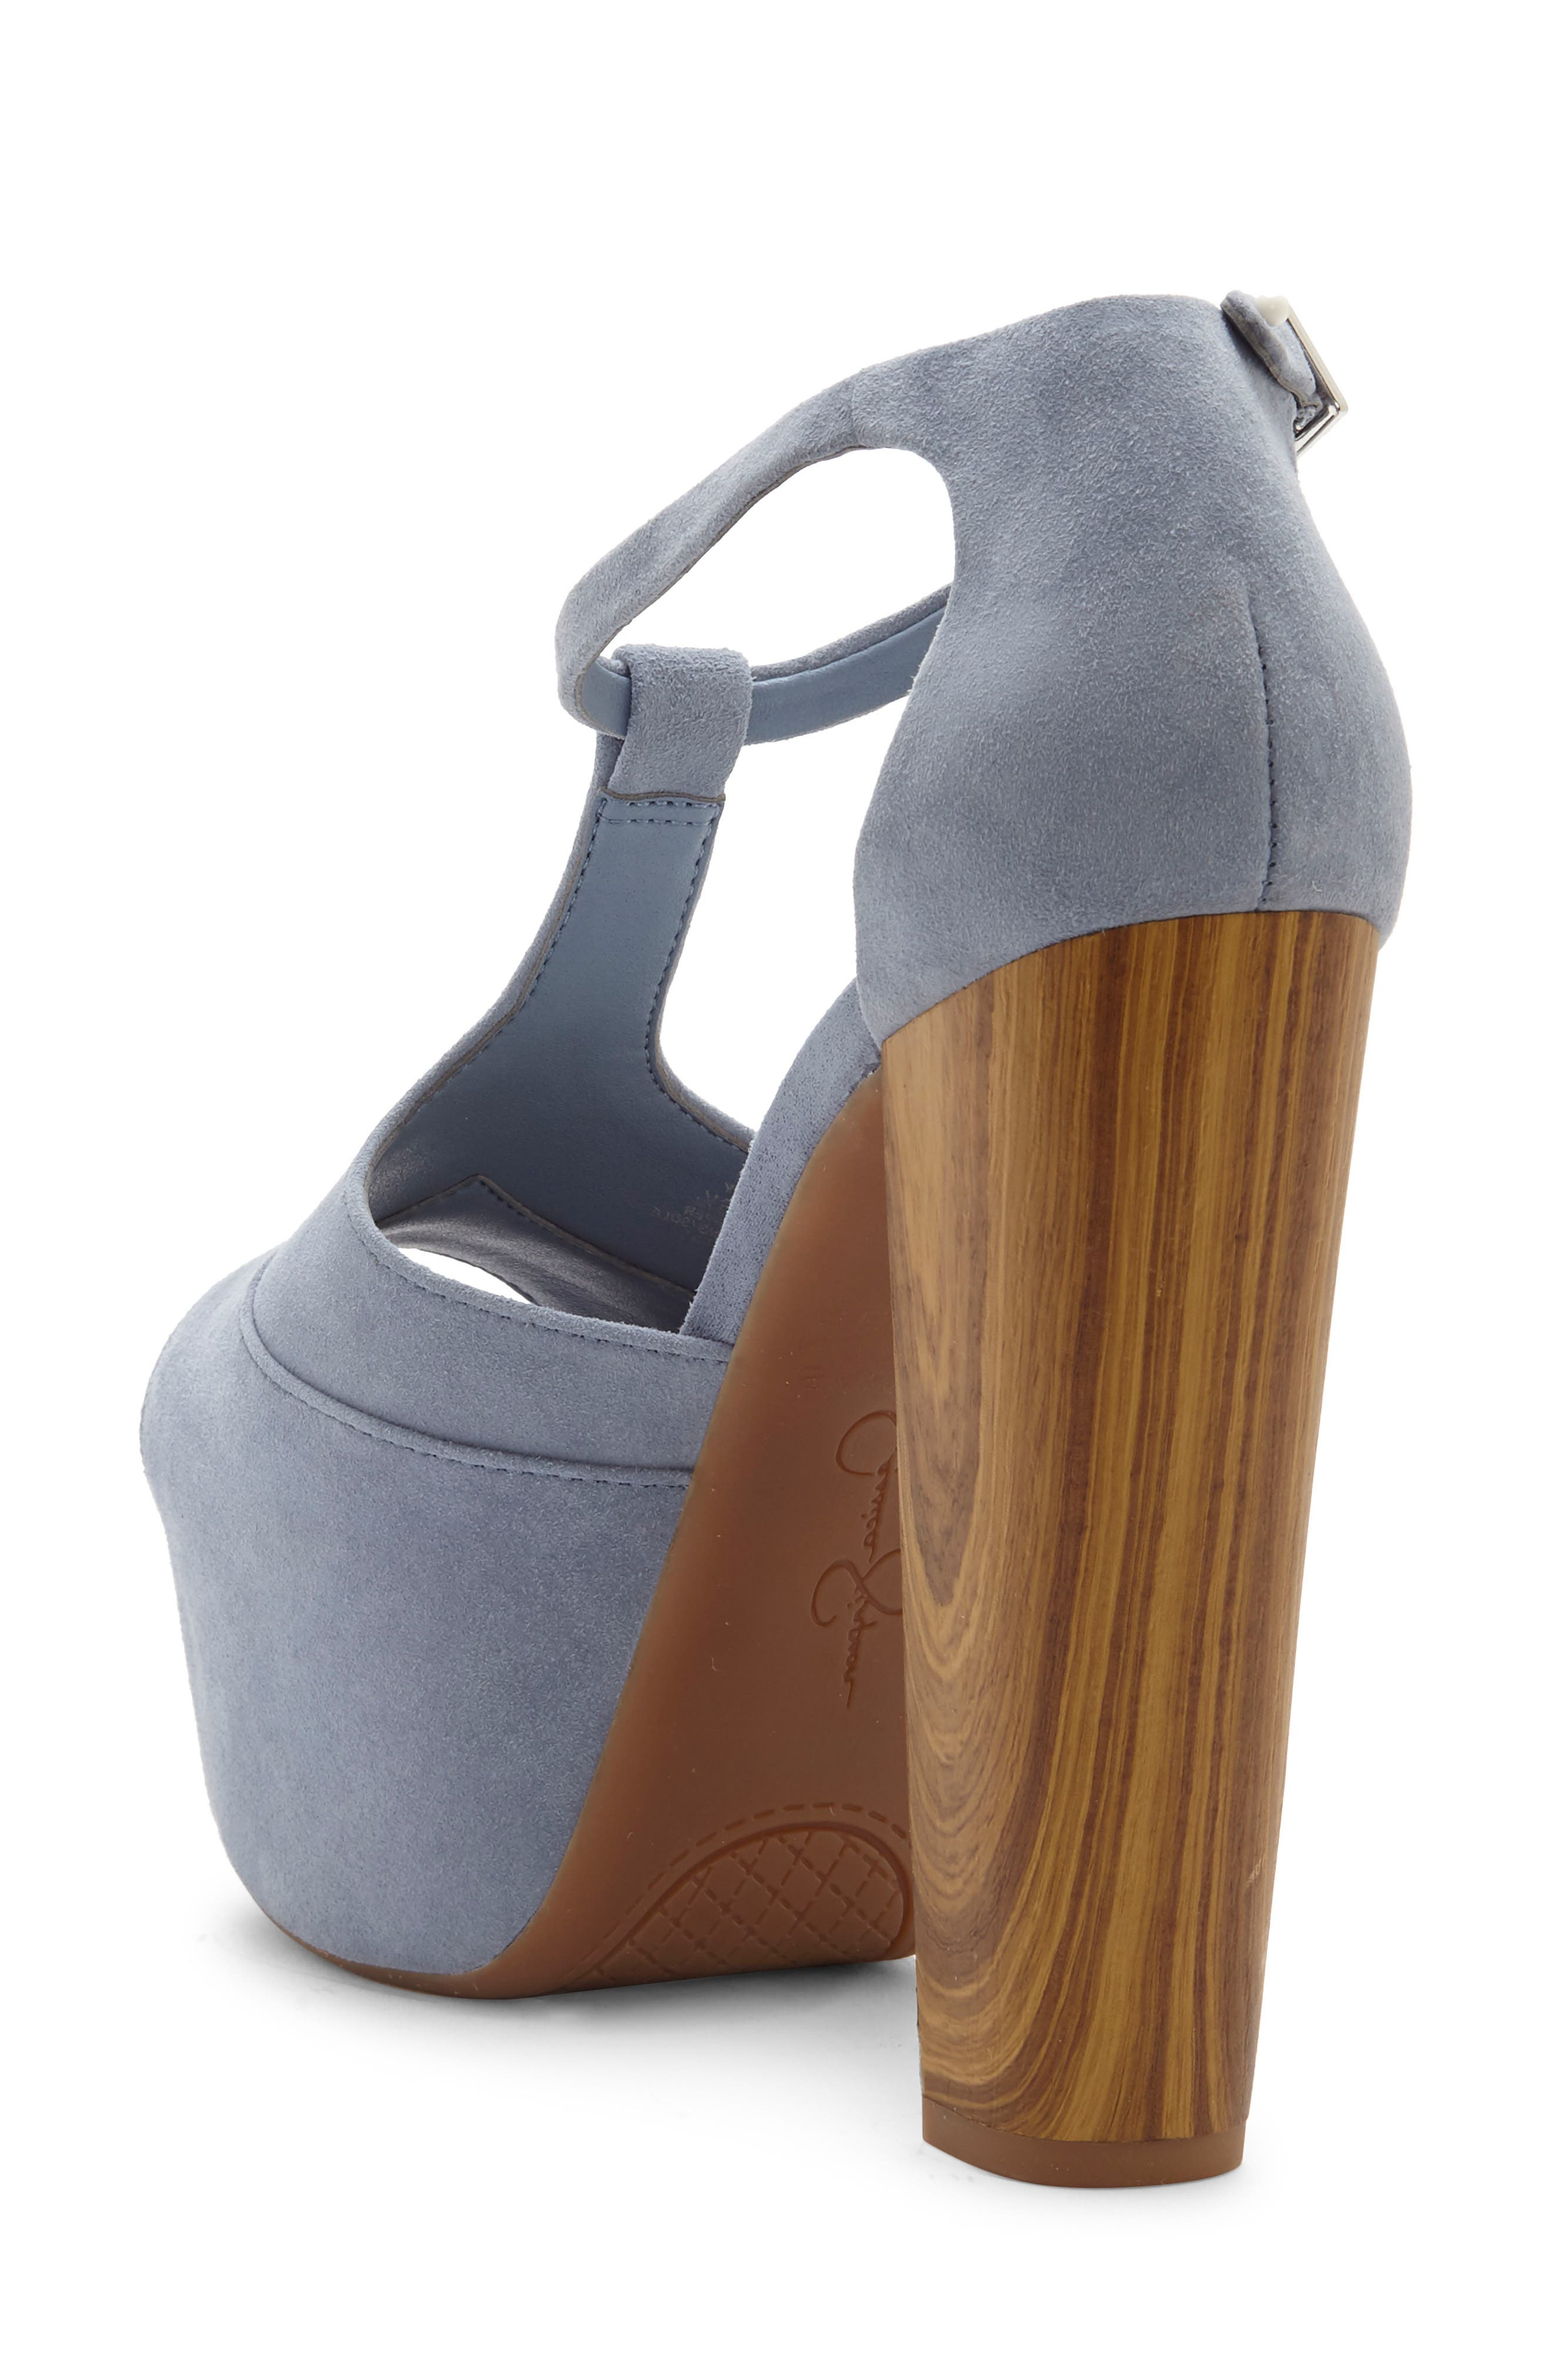 931fe3efc37 Jessica Simpson Shoes for Women